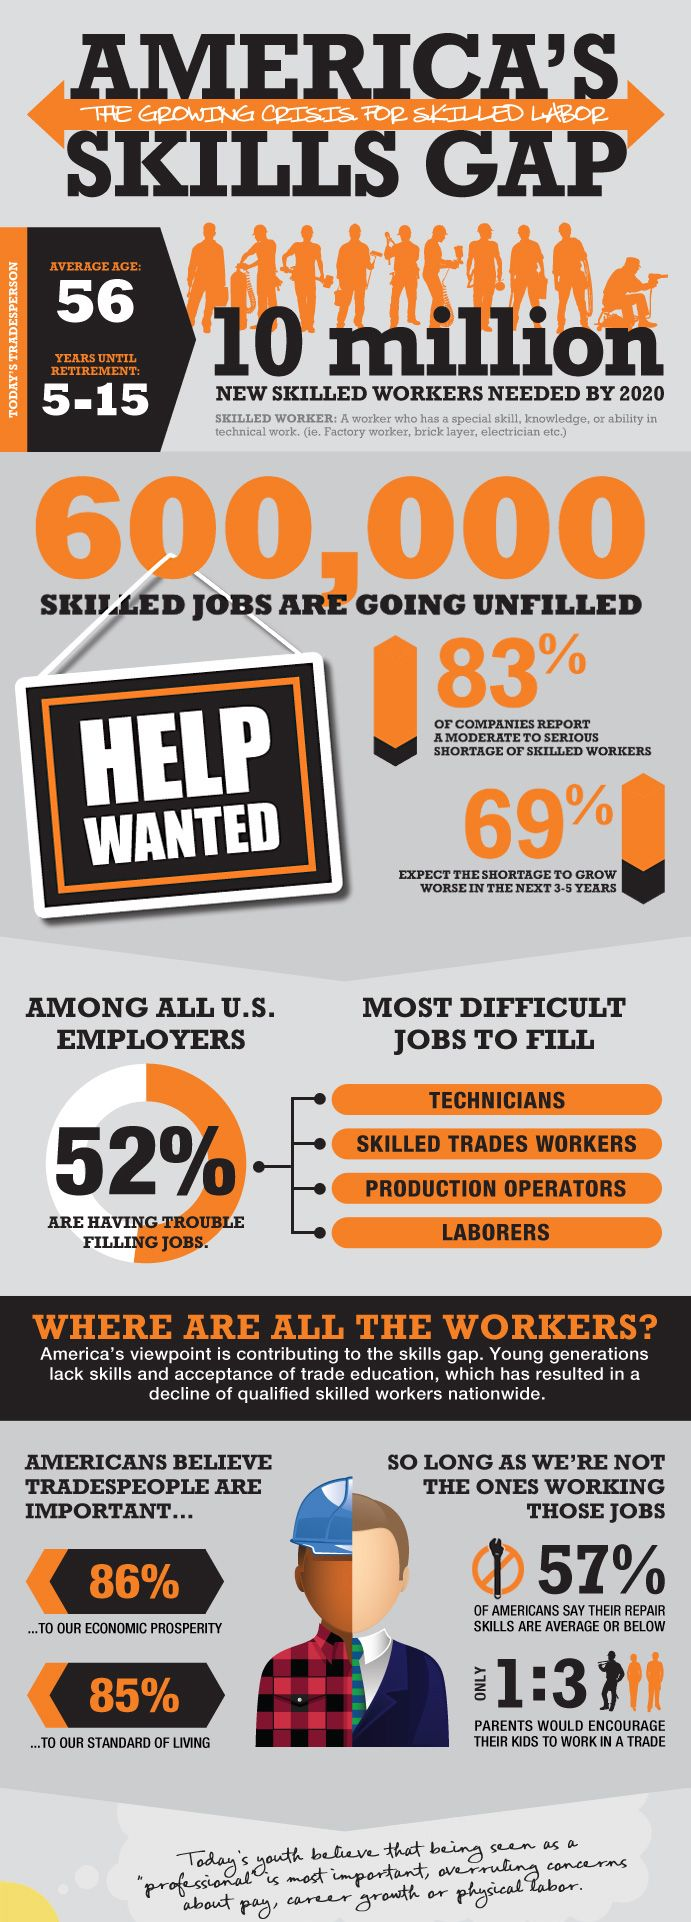 Help Fill The Gap By Taking A Career U0026 Technical Education (CTE) Course At